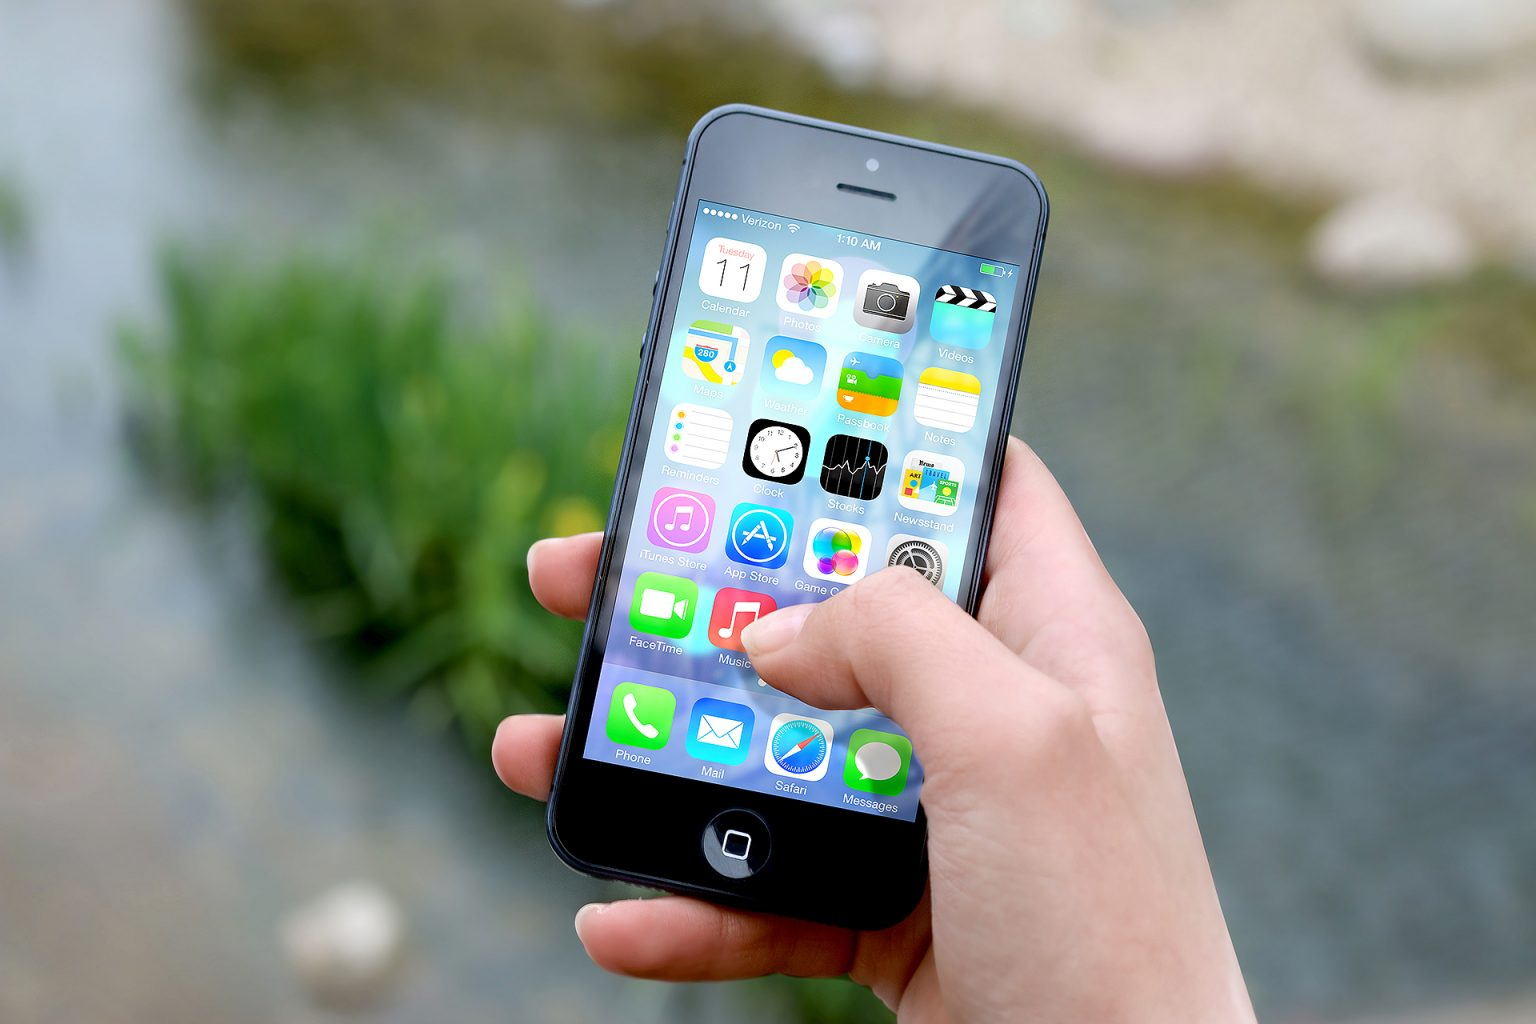 Tips for Protecting and Securing Your Smart Phone